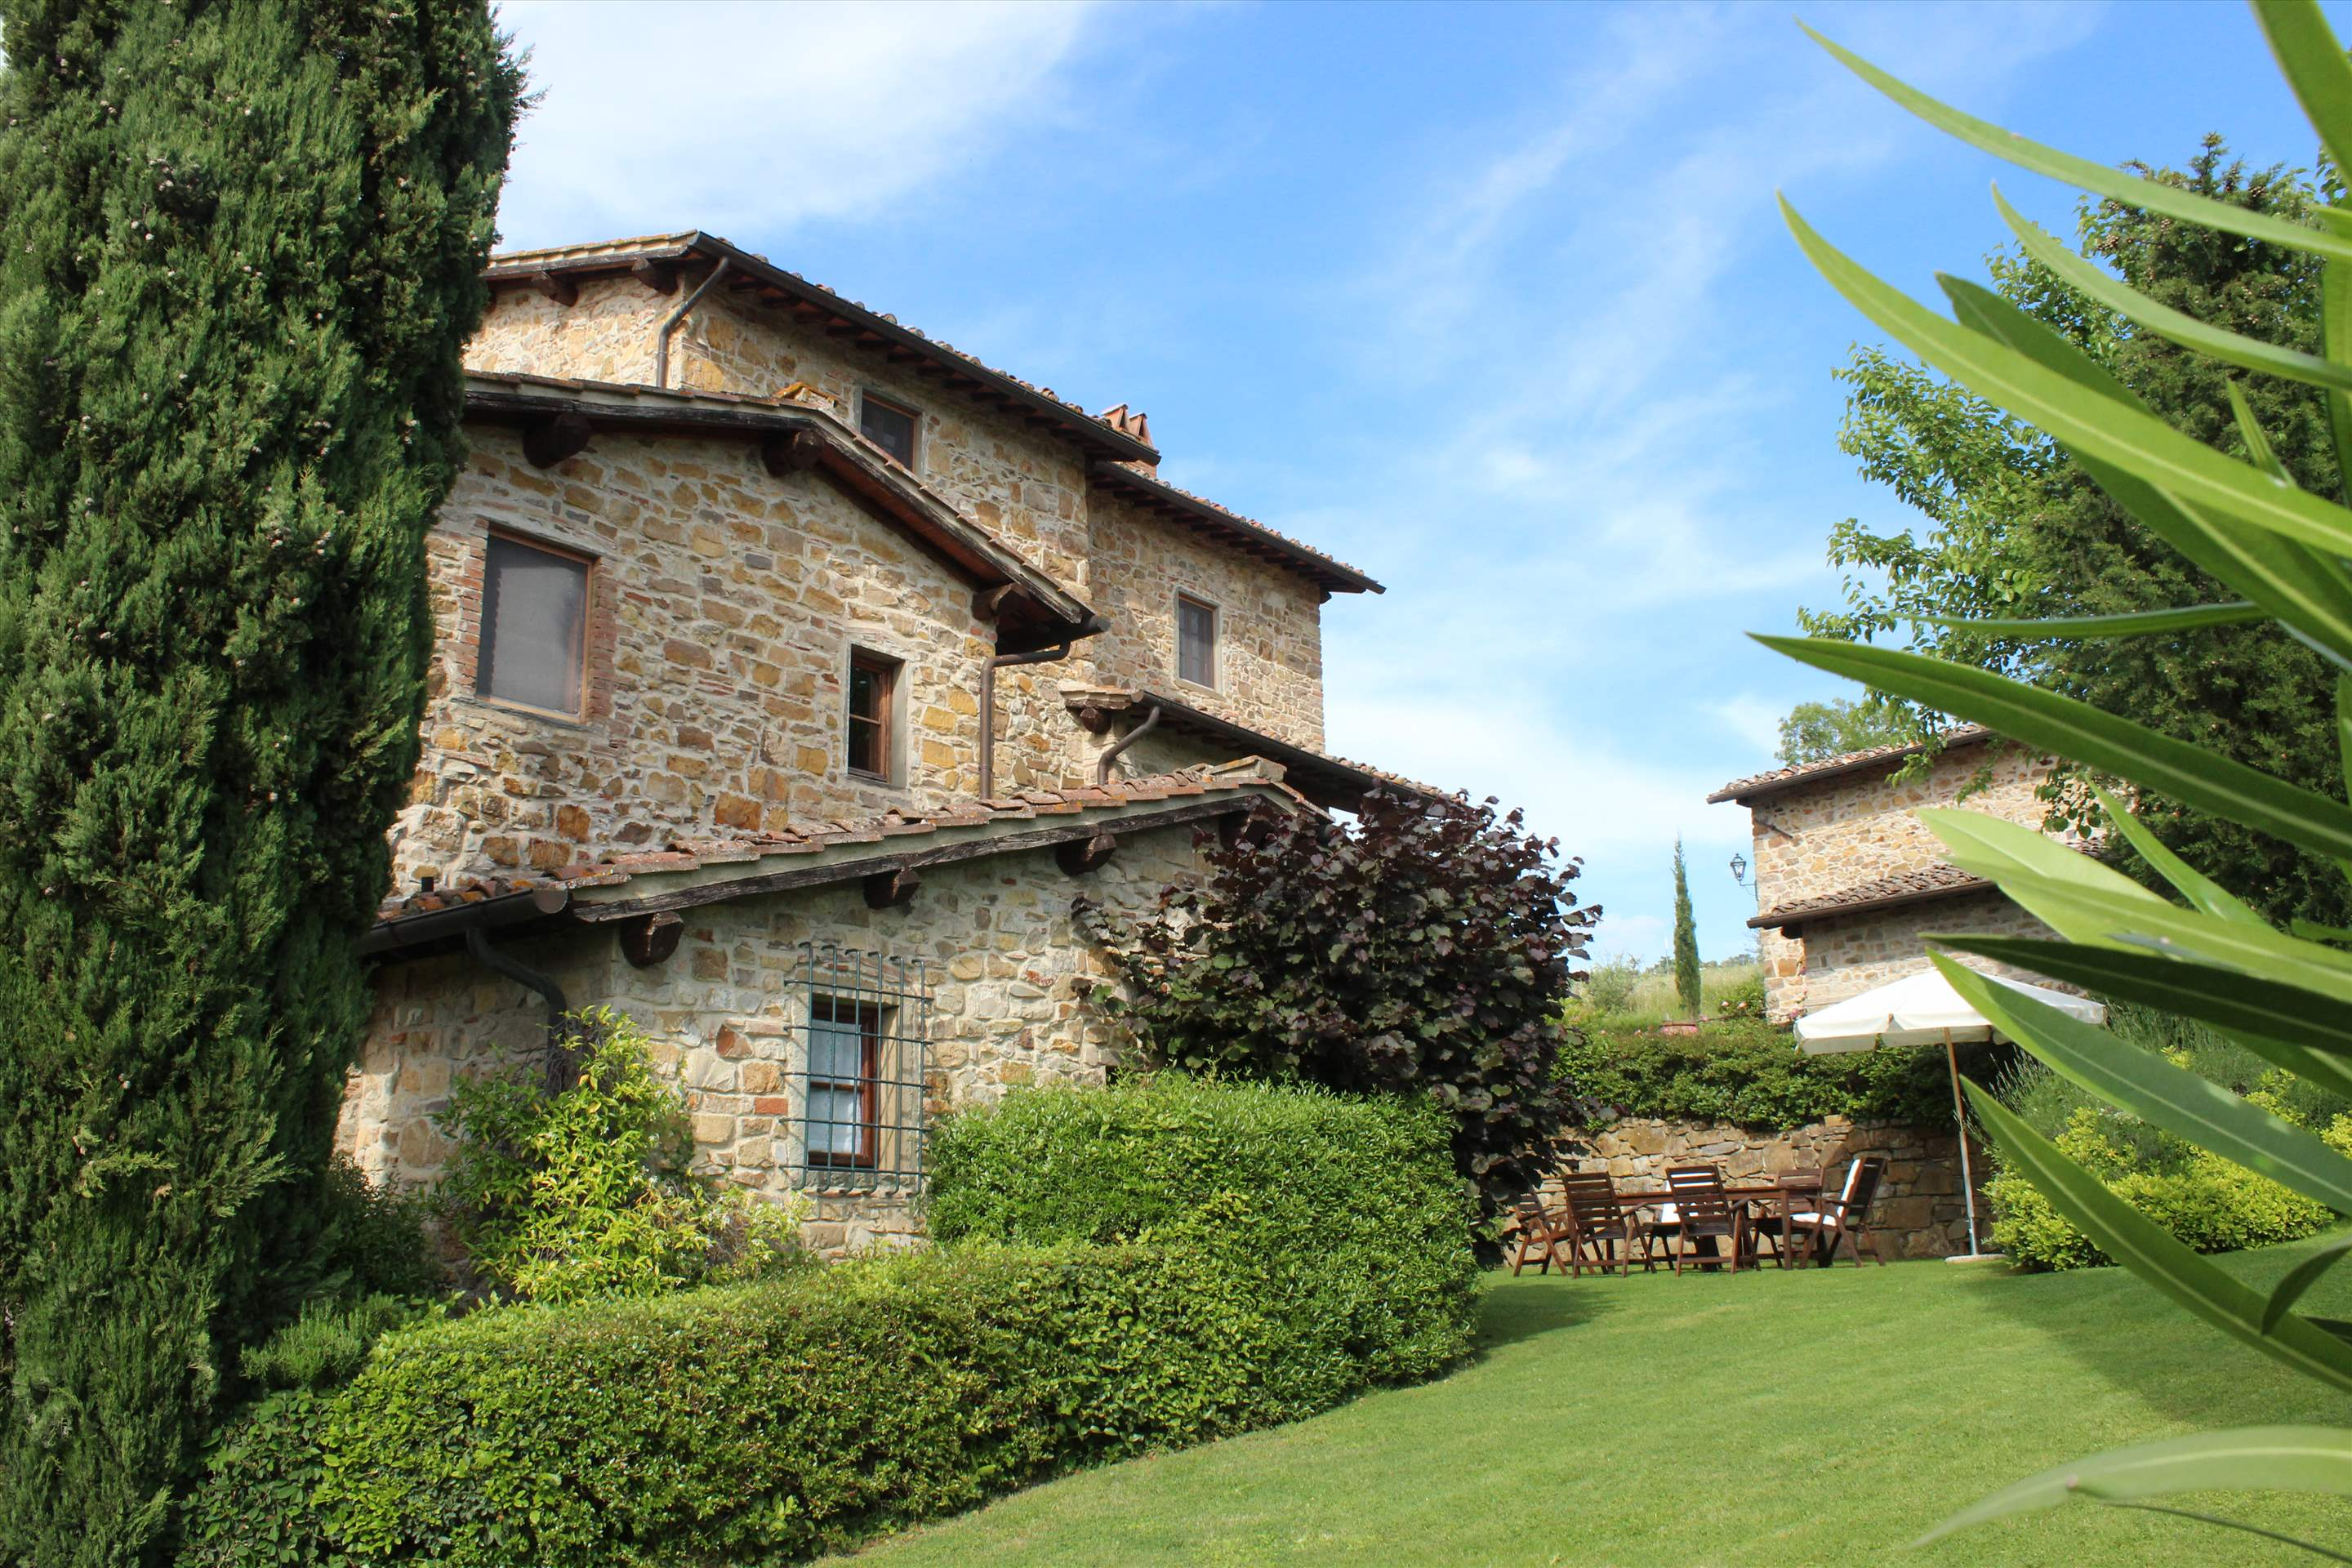 Casas Ferruzzi, 8 bedroom apartment in Chianti & Countryside, Tuscany Photo #13